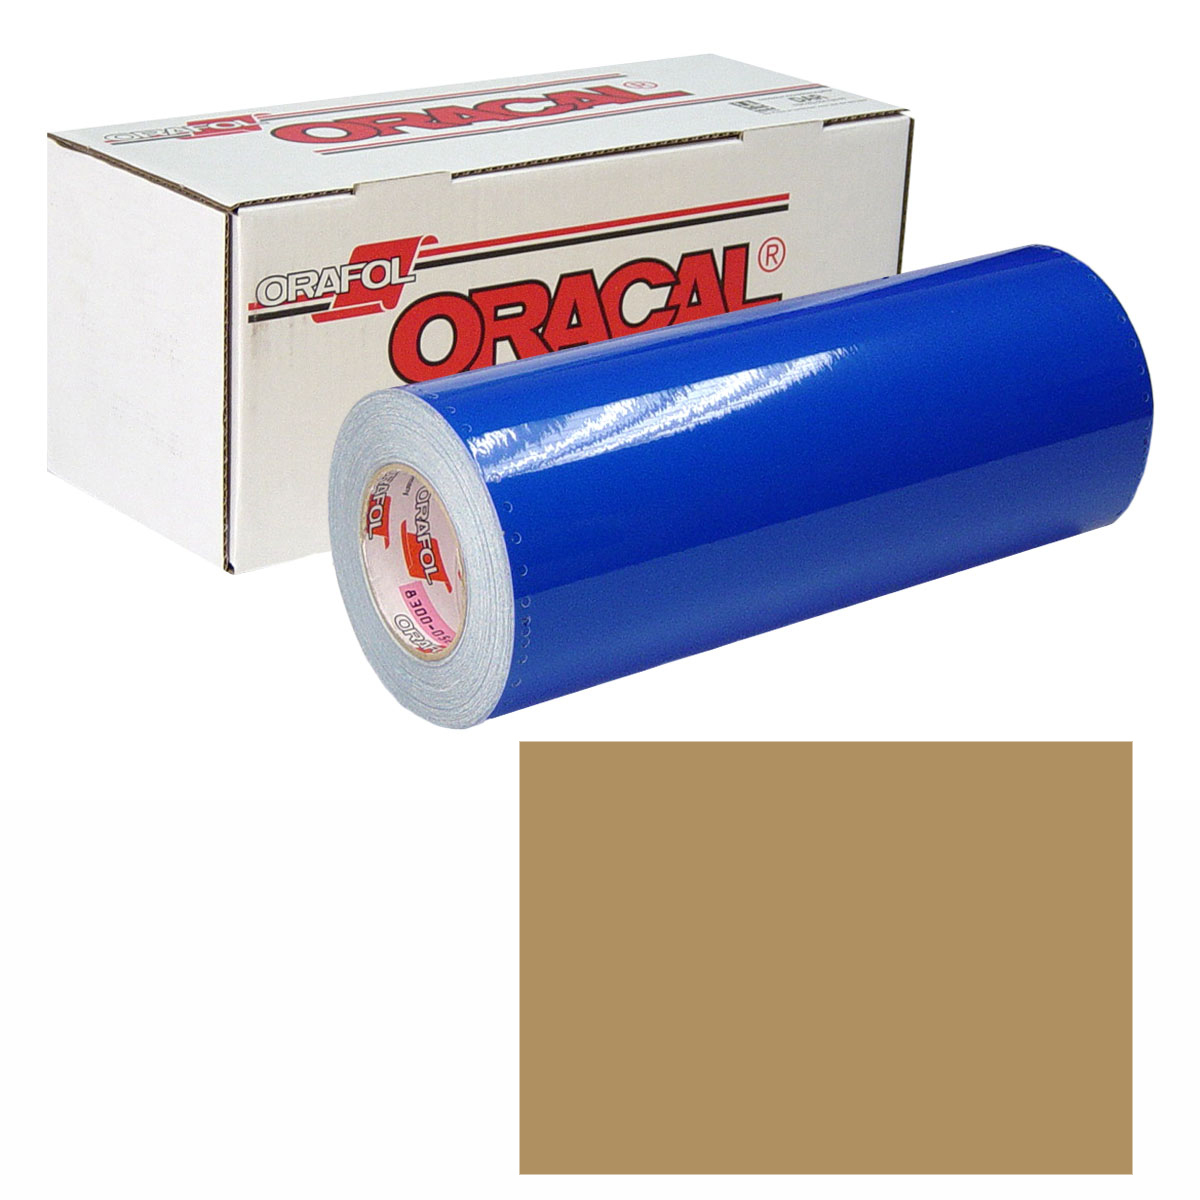 ORACAL 631 Unp 24in X 10yd 091 Gold Met